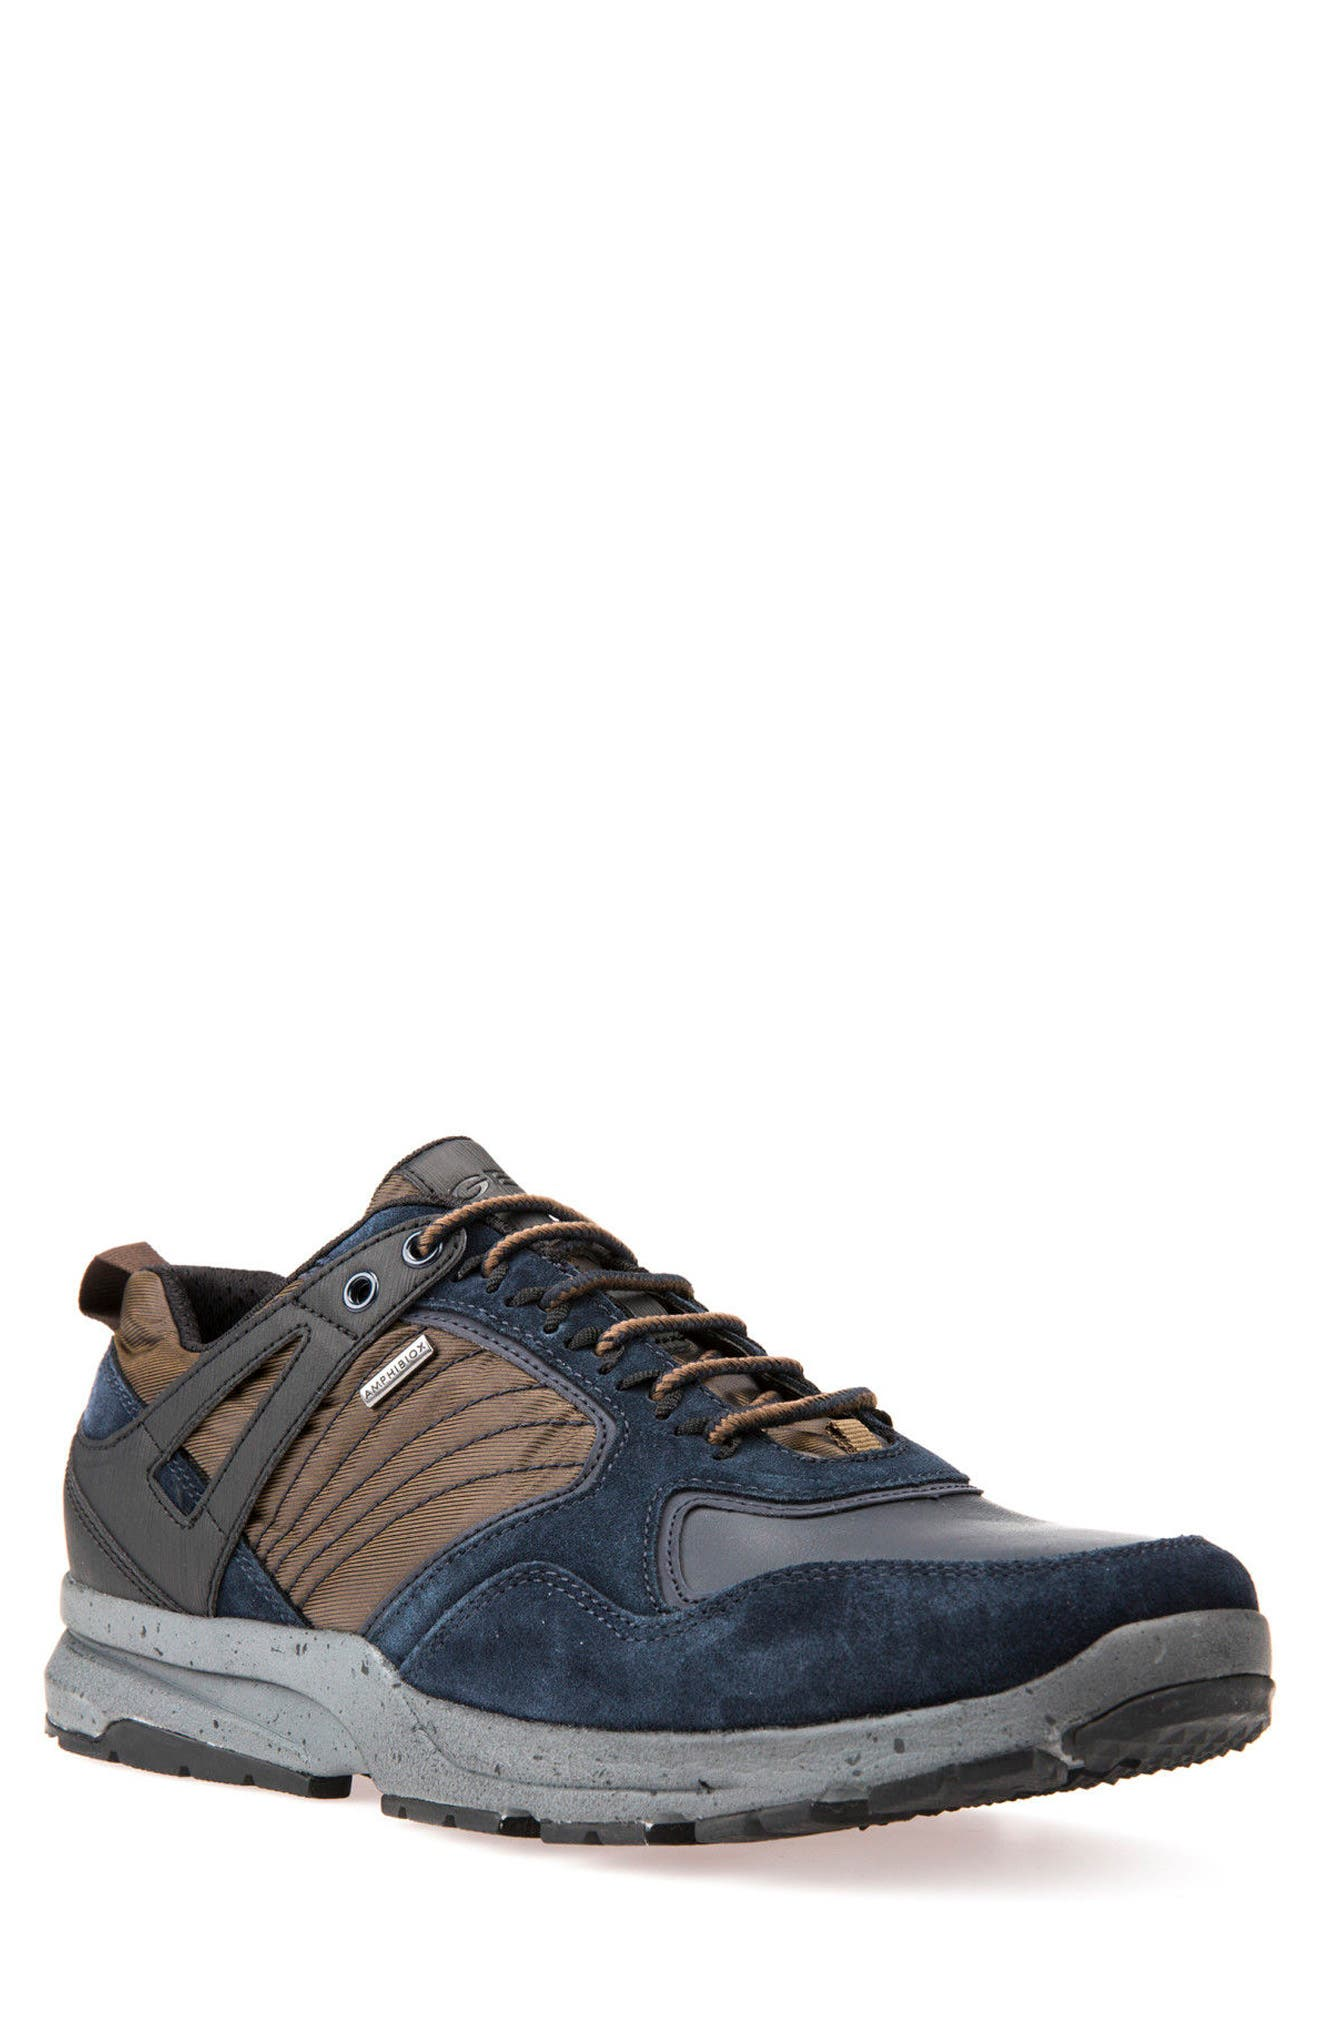 Gegy ABX Waterproof Sneaker,                         Main,                         color, Navy/ Musk